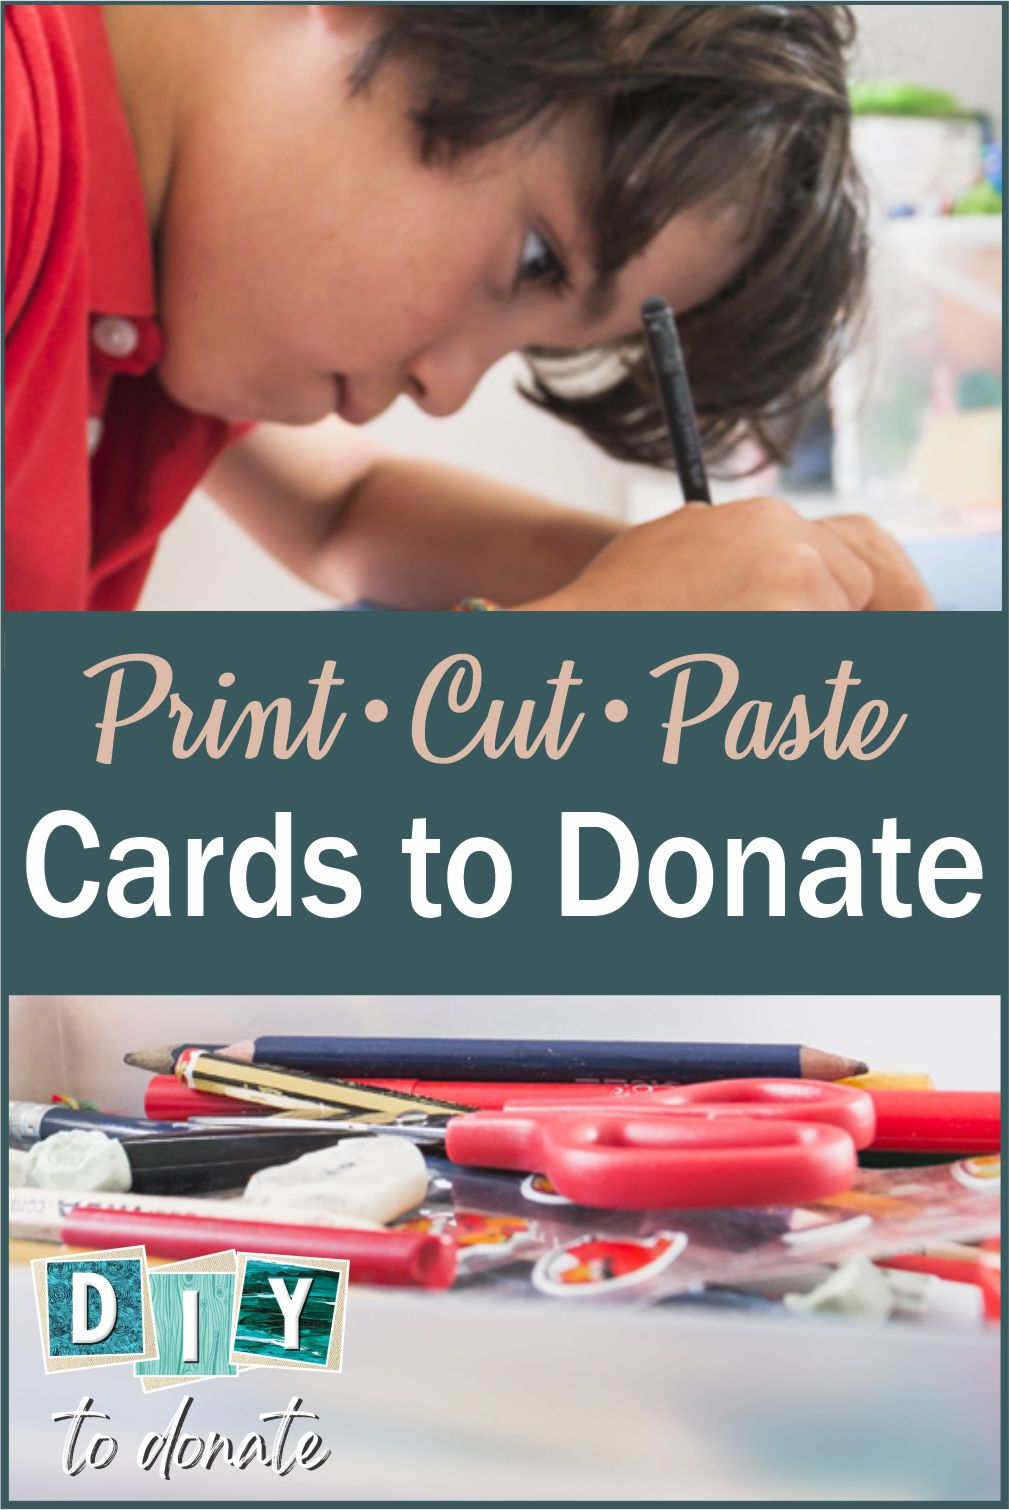 Making cards for hospitalized kids is a rewarding way to introduce your children to community service. Use our free printables for fun cut and paste cards. #diytodonate #diy #printables #giving #donate #cards #smiles #communityservice #freeprintables #rewarding